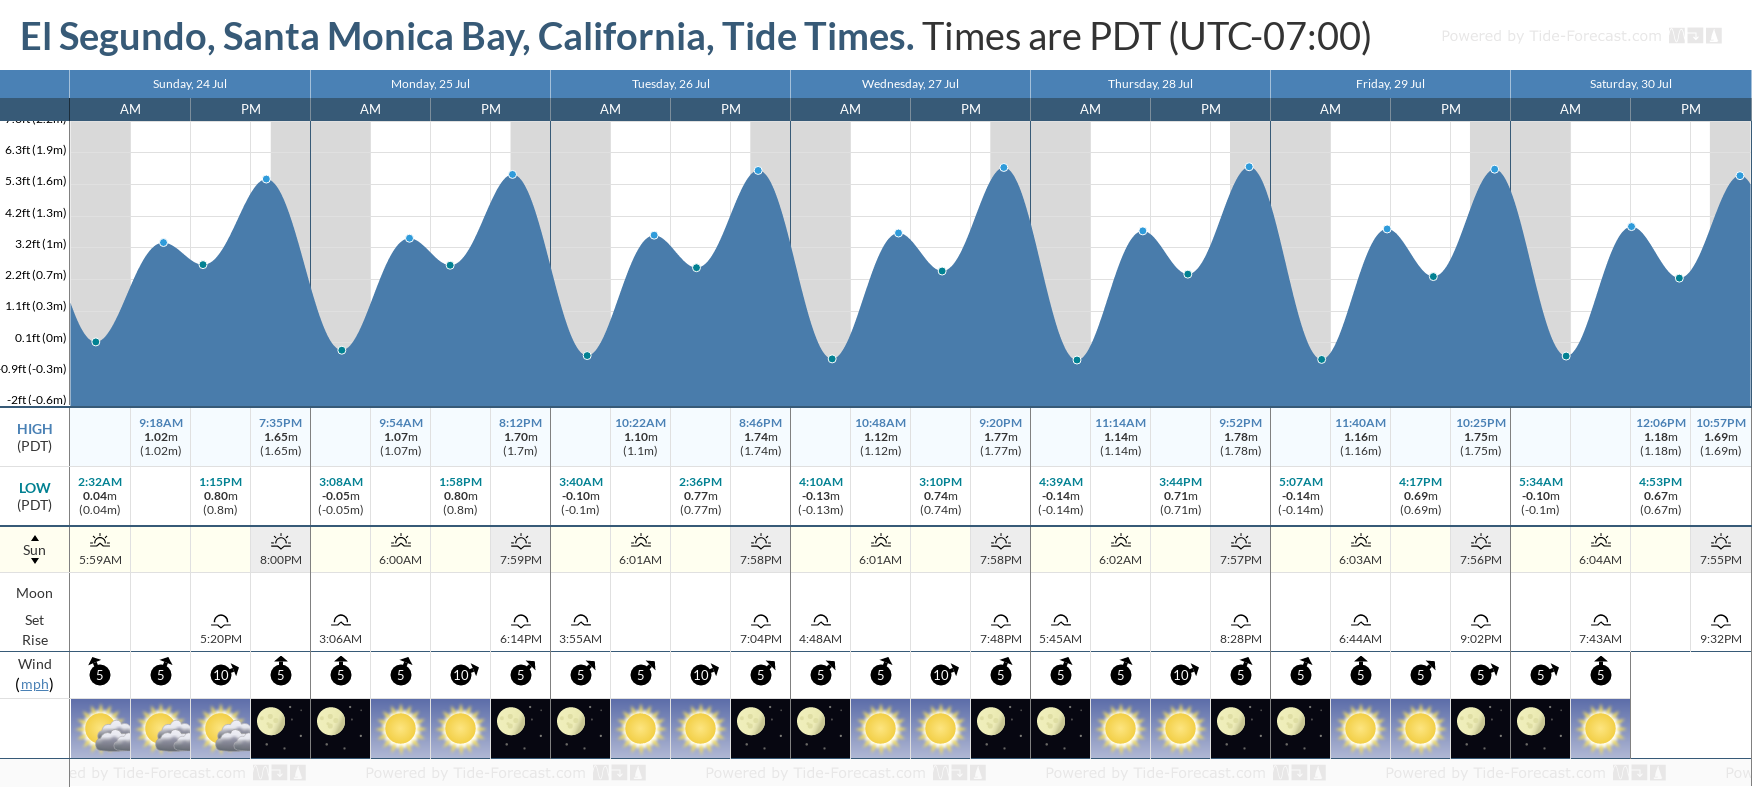 El Segundo, Santa Monica Bay, California Tide Chart including high and low tide tide times for the next 7 days